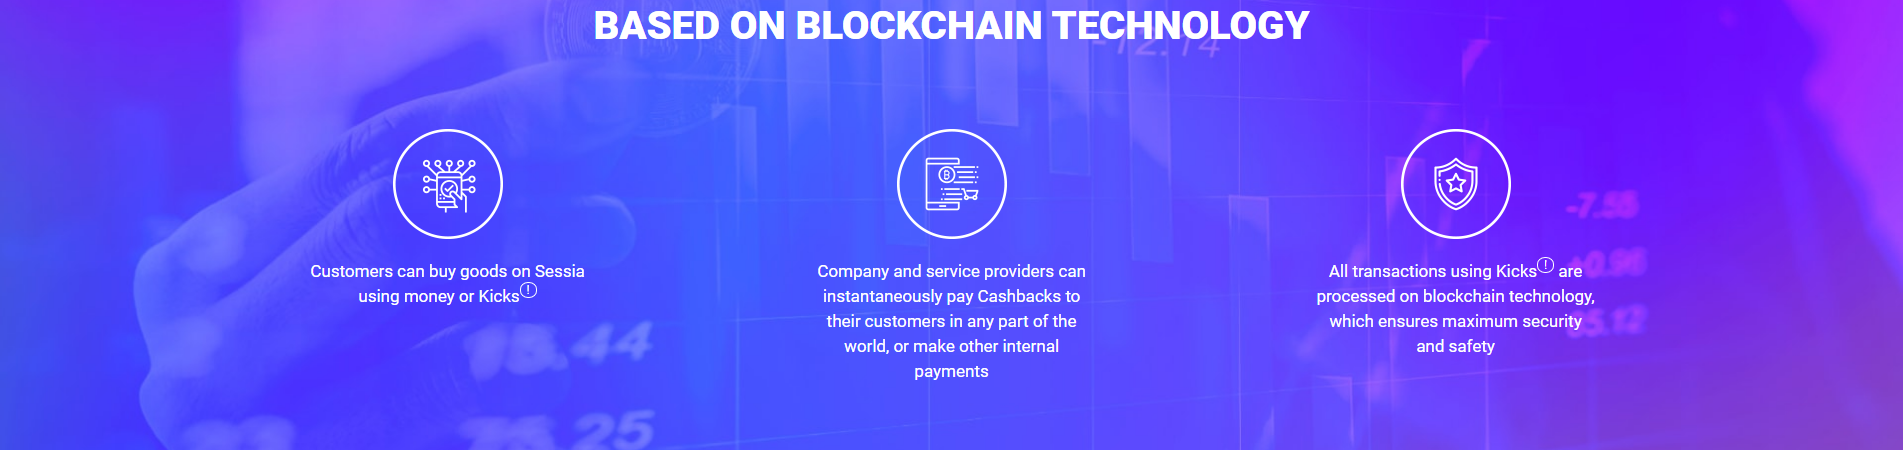 Sessia To Revolutionize The Market Through Blockchain Cashback Service (2)